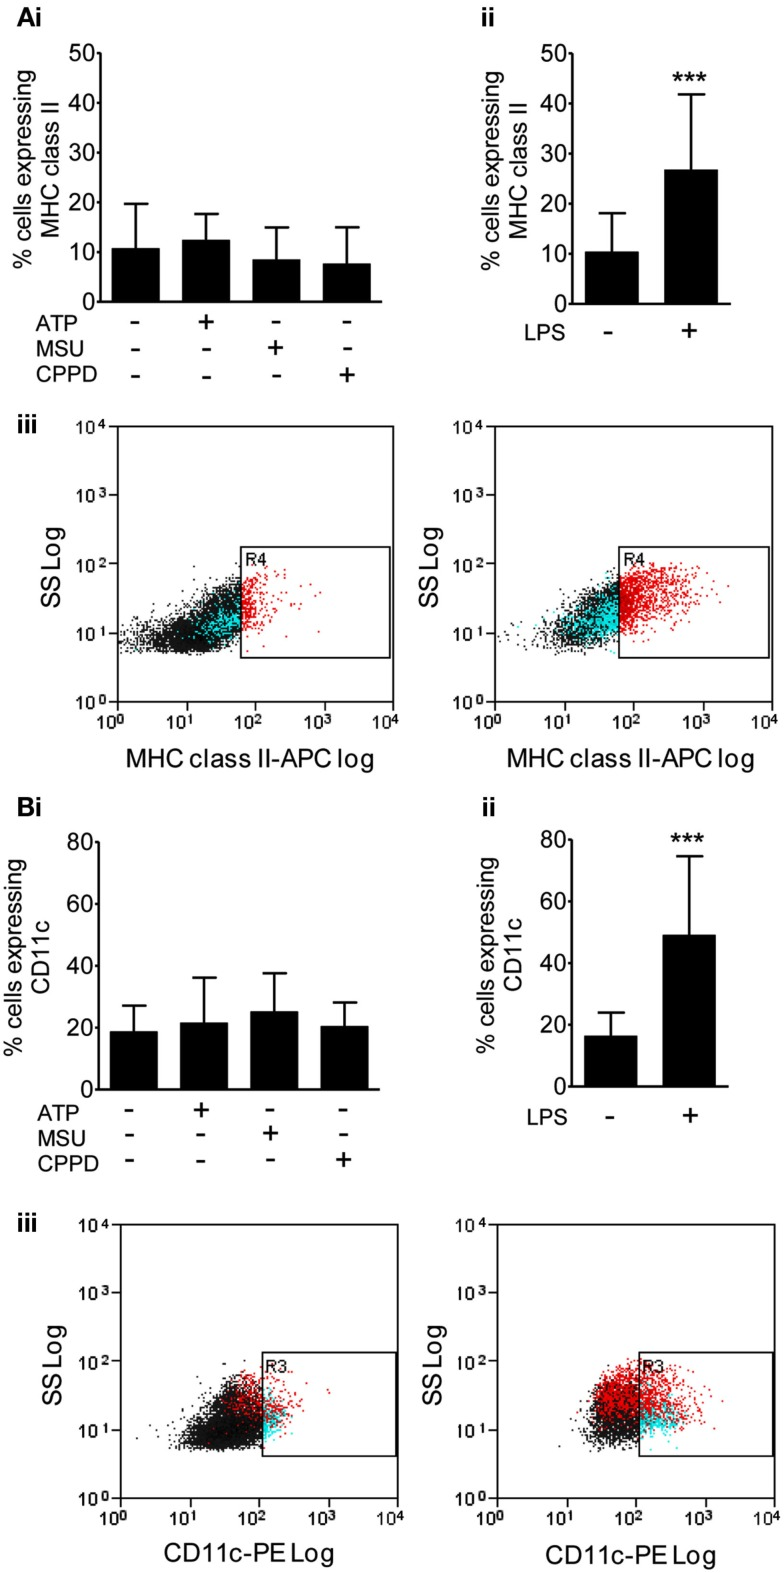 Effects of DAMPs on surface marker expression in microglia cells . The expression of surface markers of microglia activation MHC class II (A) , and CD11c (B) were measured after 24 h exposure to the NLRP3-activating DAMPs ATP (5 mM), MSU, and CPPD [both 250 μg/ml; (Bi) ] or the PAMP LPS [1 μg/ml; (Bii) ]. Flow cytometry was used to quantify surface marker expression. Data are expressed as a percentage of cells that co-express CD45 and CD11b. Representative dot plots showing the CD45 and CD11b expressing cell population plus and minus LPS treatment are also shown (Biii) . Data are pooled samples from at least five separate experiments. *** P